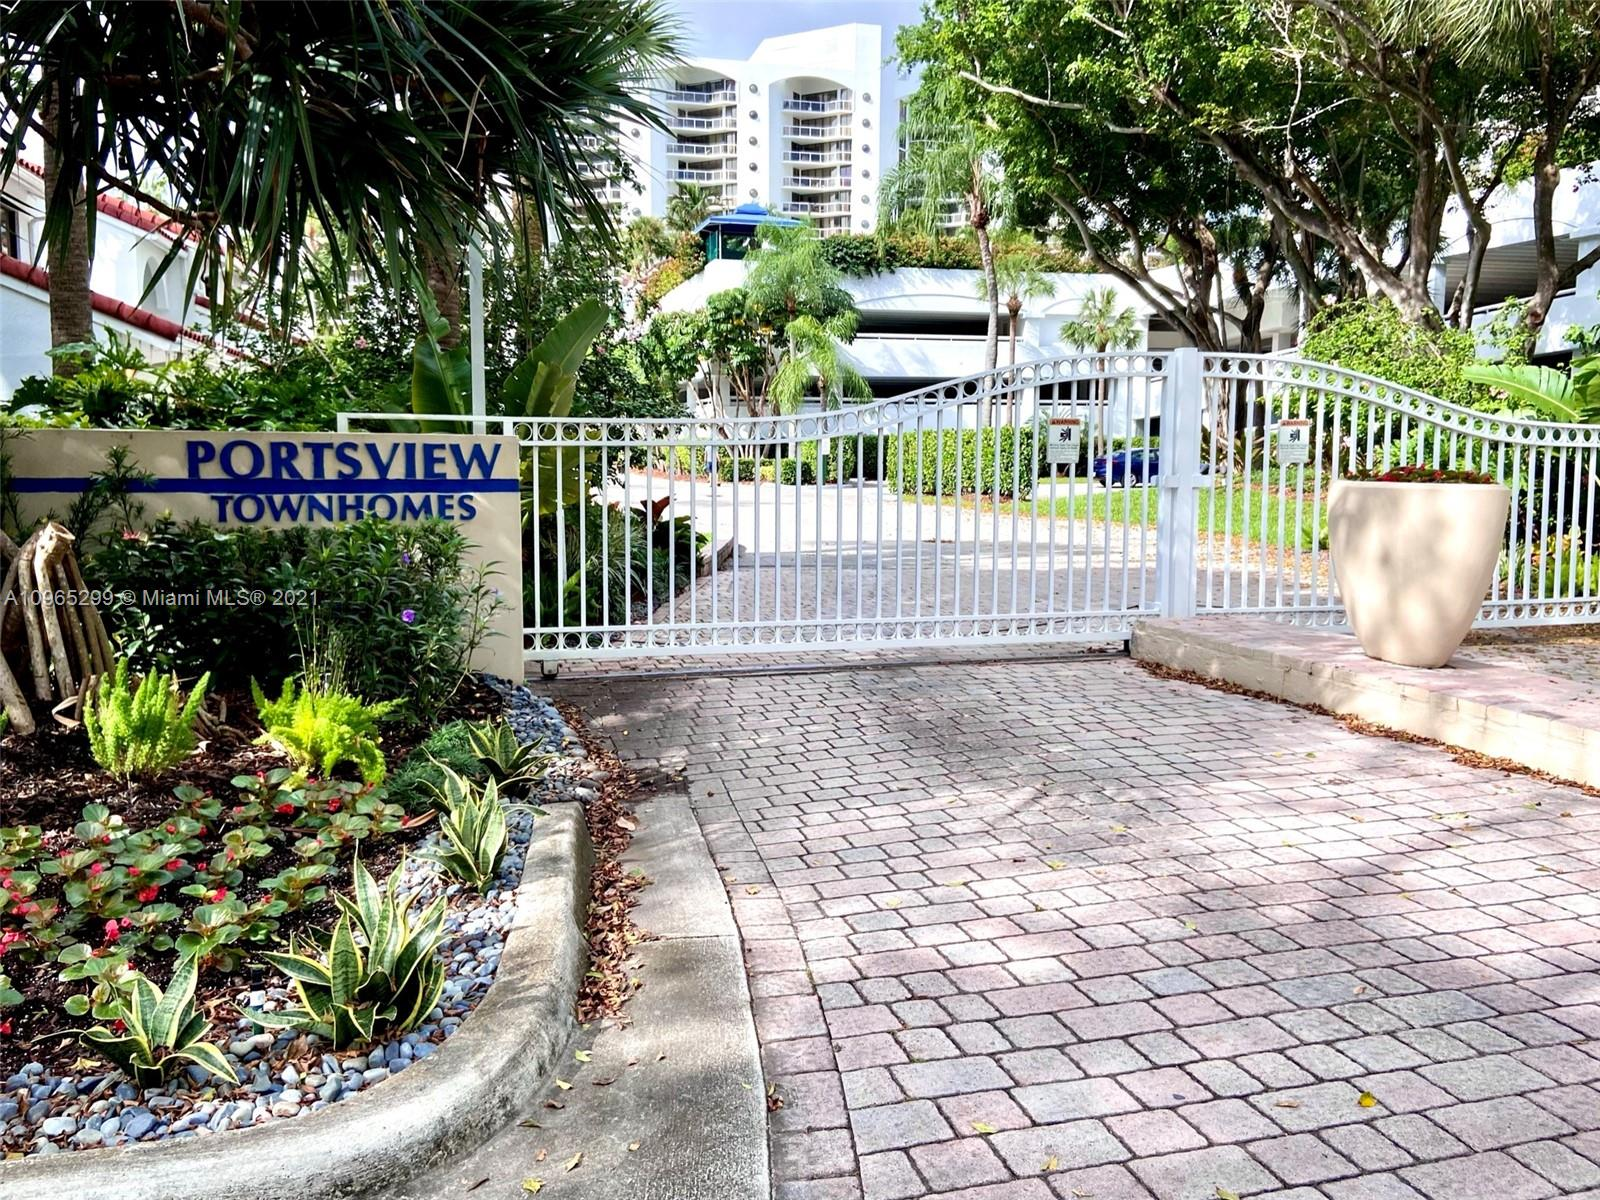 Rarely on the market. Immaculate landscaped 2 Bedroom + Den and 2.5 Bath waterfront townhome overlooking Waterways Marina in a desirable private gated community with direct marina access. Featuring open concept living and dining area, contemporary kitchen, oversized Master Bedroom suite with large walk-in closet, skylights. Garage converted to den. Enjoy the serene water views from your main floor, large private screened-in patio looking directly to the marina, and 2nd floor balcony overlooking the yachts cruising by. Community amenities include lighted tennis courts, 2 lavish pools, 24/7 security. Walk to restaurants, post office, and supermarket. Perfect for a growing family. Desirable A+ Schools and parks. NOTE: 55 to 120 FEET boat slips are available for purchases.